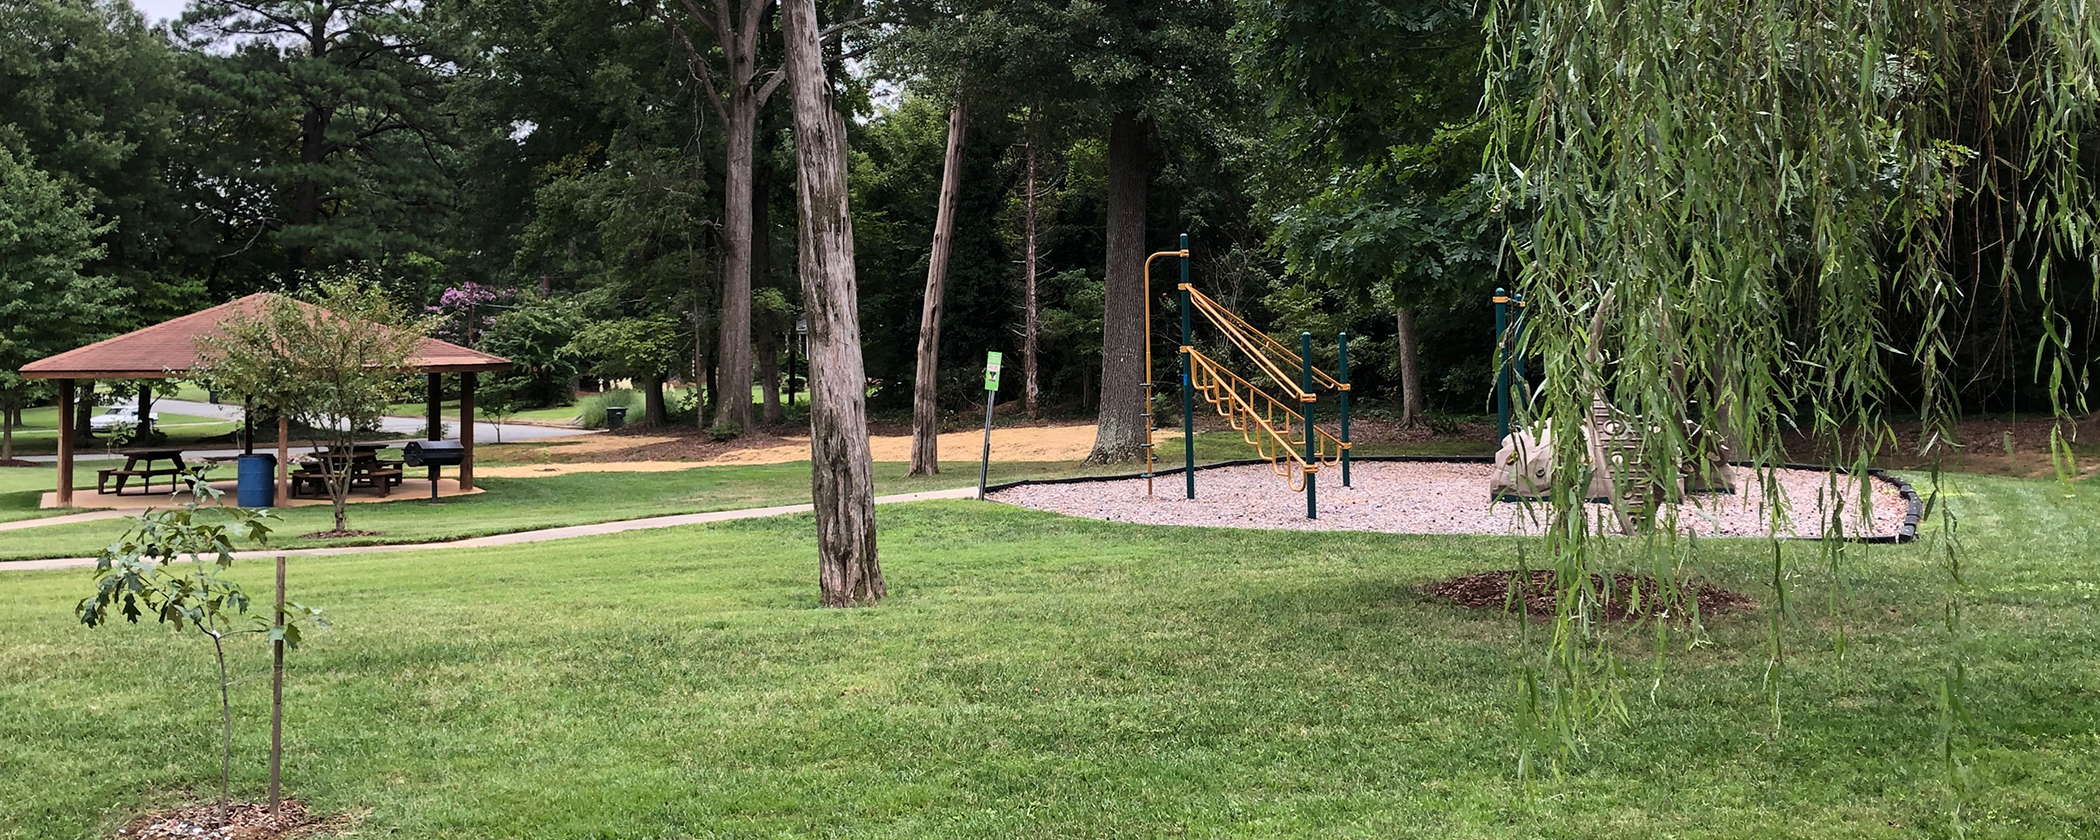 The park surrounding the Civic Center features a sand volleyball court, playground, green space, and a picnic shelter.